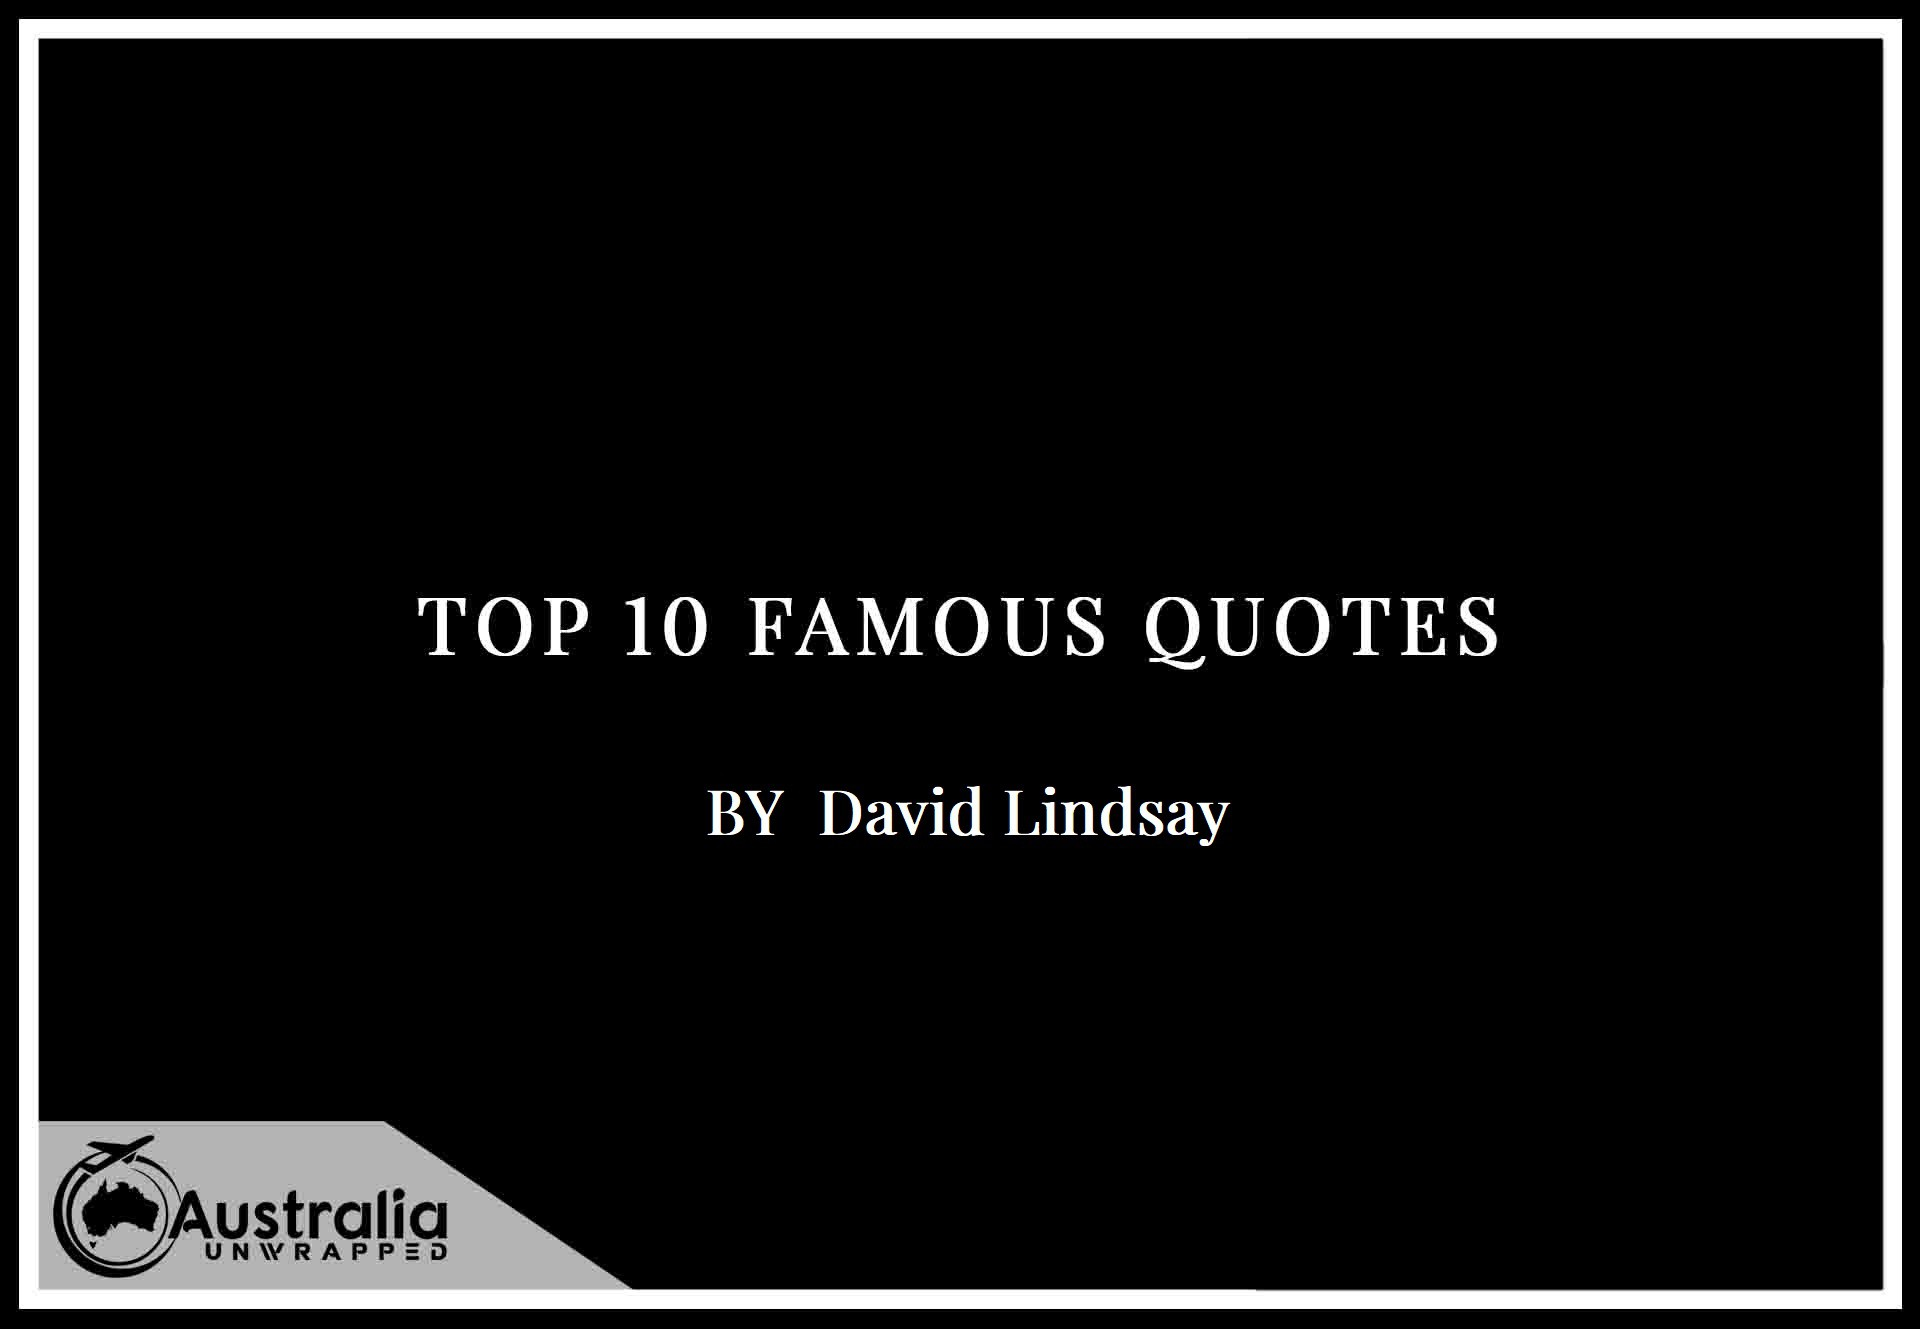 Top 10 Famous Quotes by Author David Lindsay